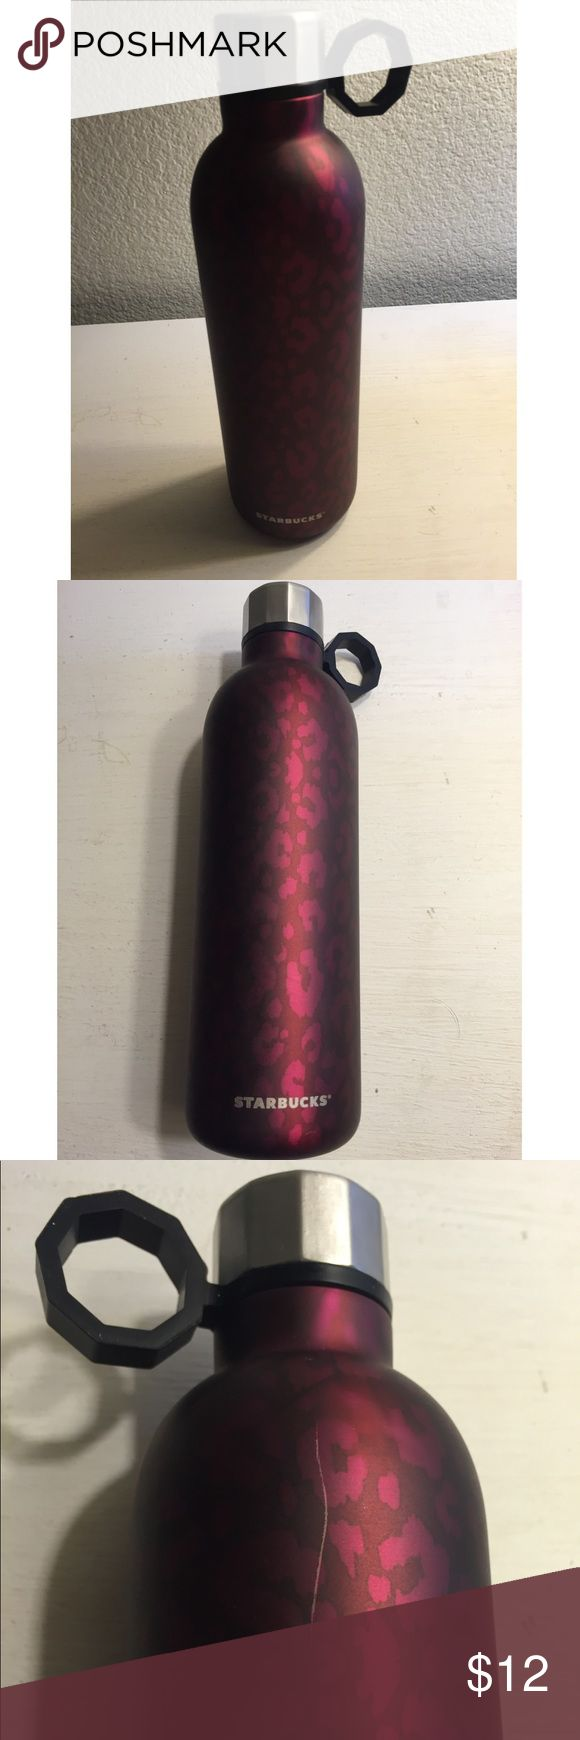 Starbucks Water Bottle Starbucks Water Bottle. Pink print. Brand new, never used. It does have one scratch which is pictured. New with Tags. Starbucks Other